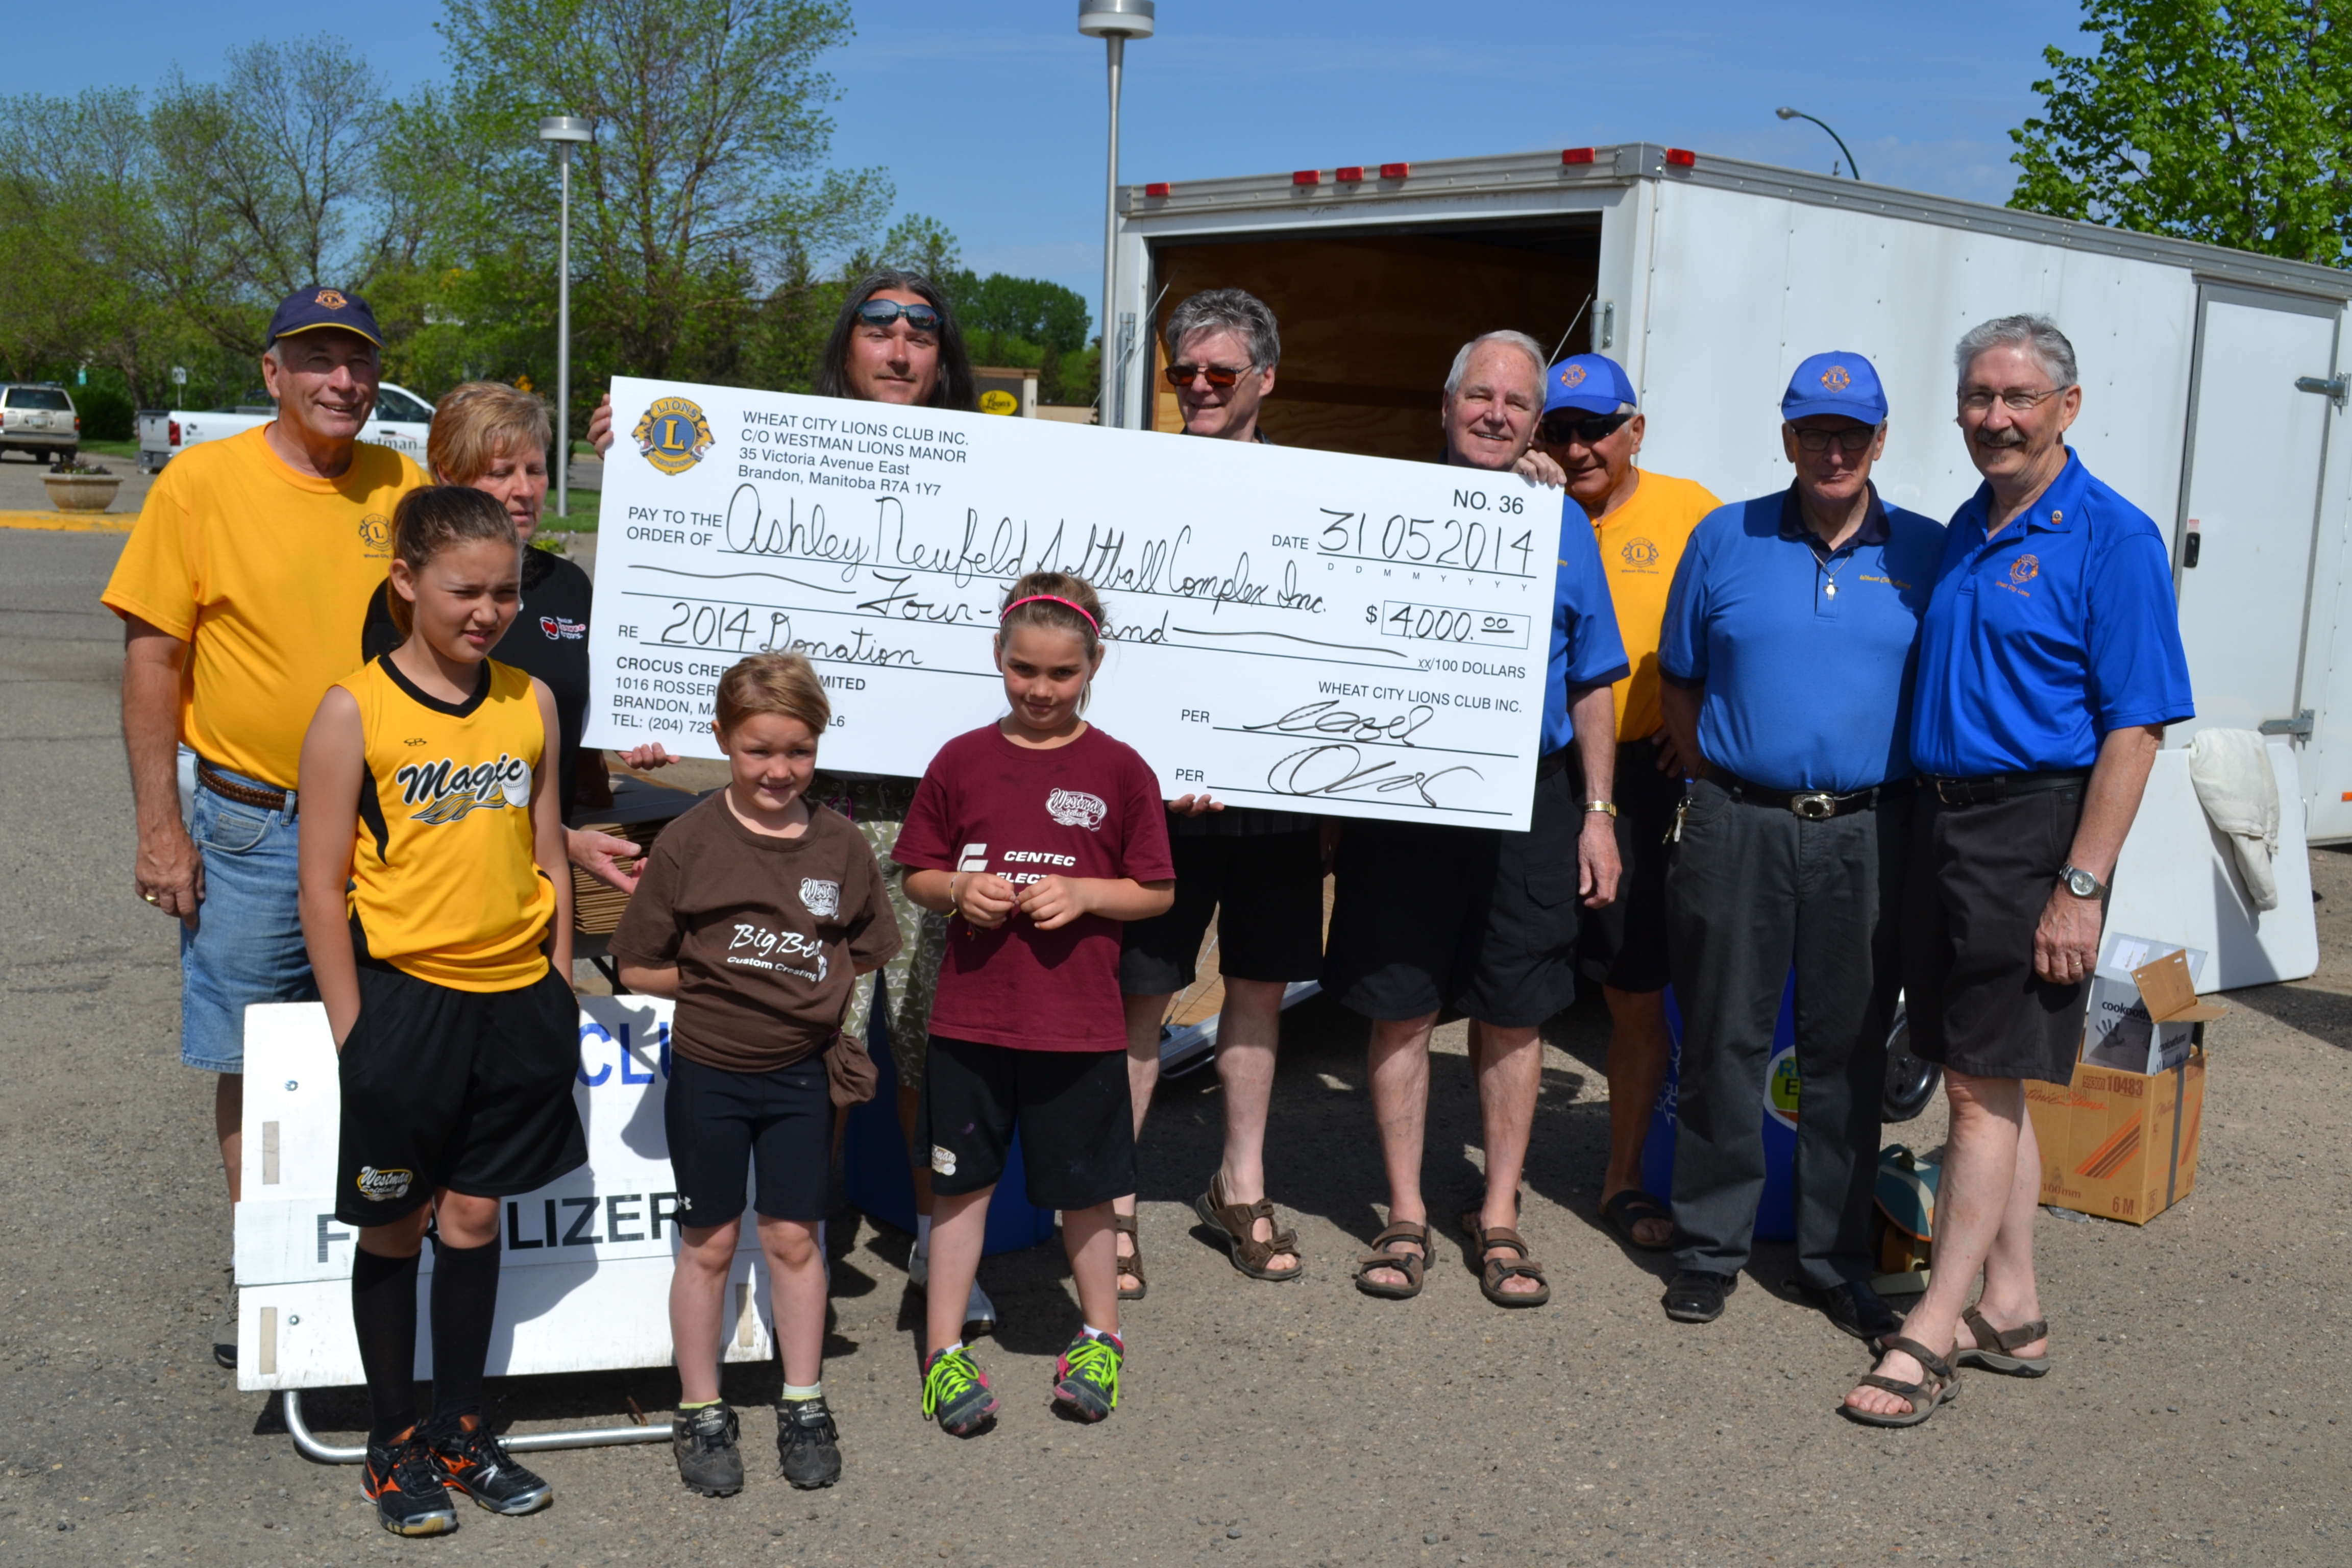 $4,000 Donation to Ashley Neufeld Softball Complex Inc., Year1 of a 5 year commitment